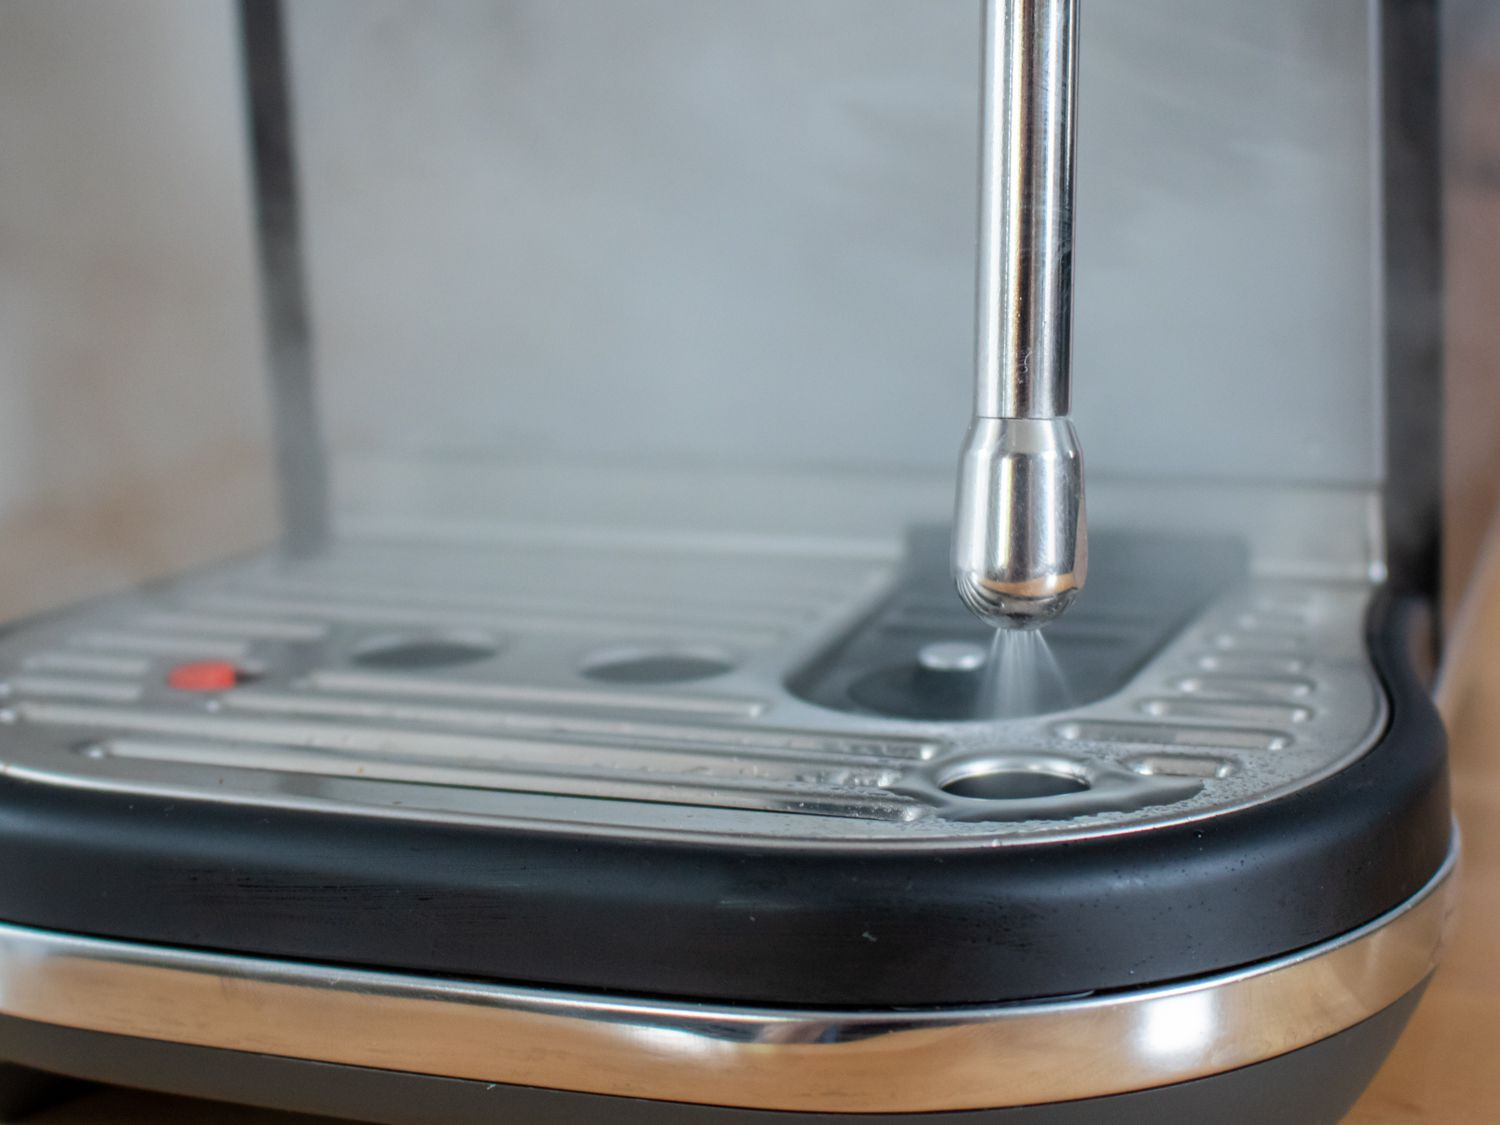 a close up of the steamer wand on the Breville Bambino plus espresso machine